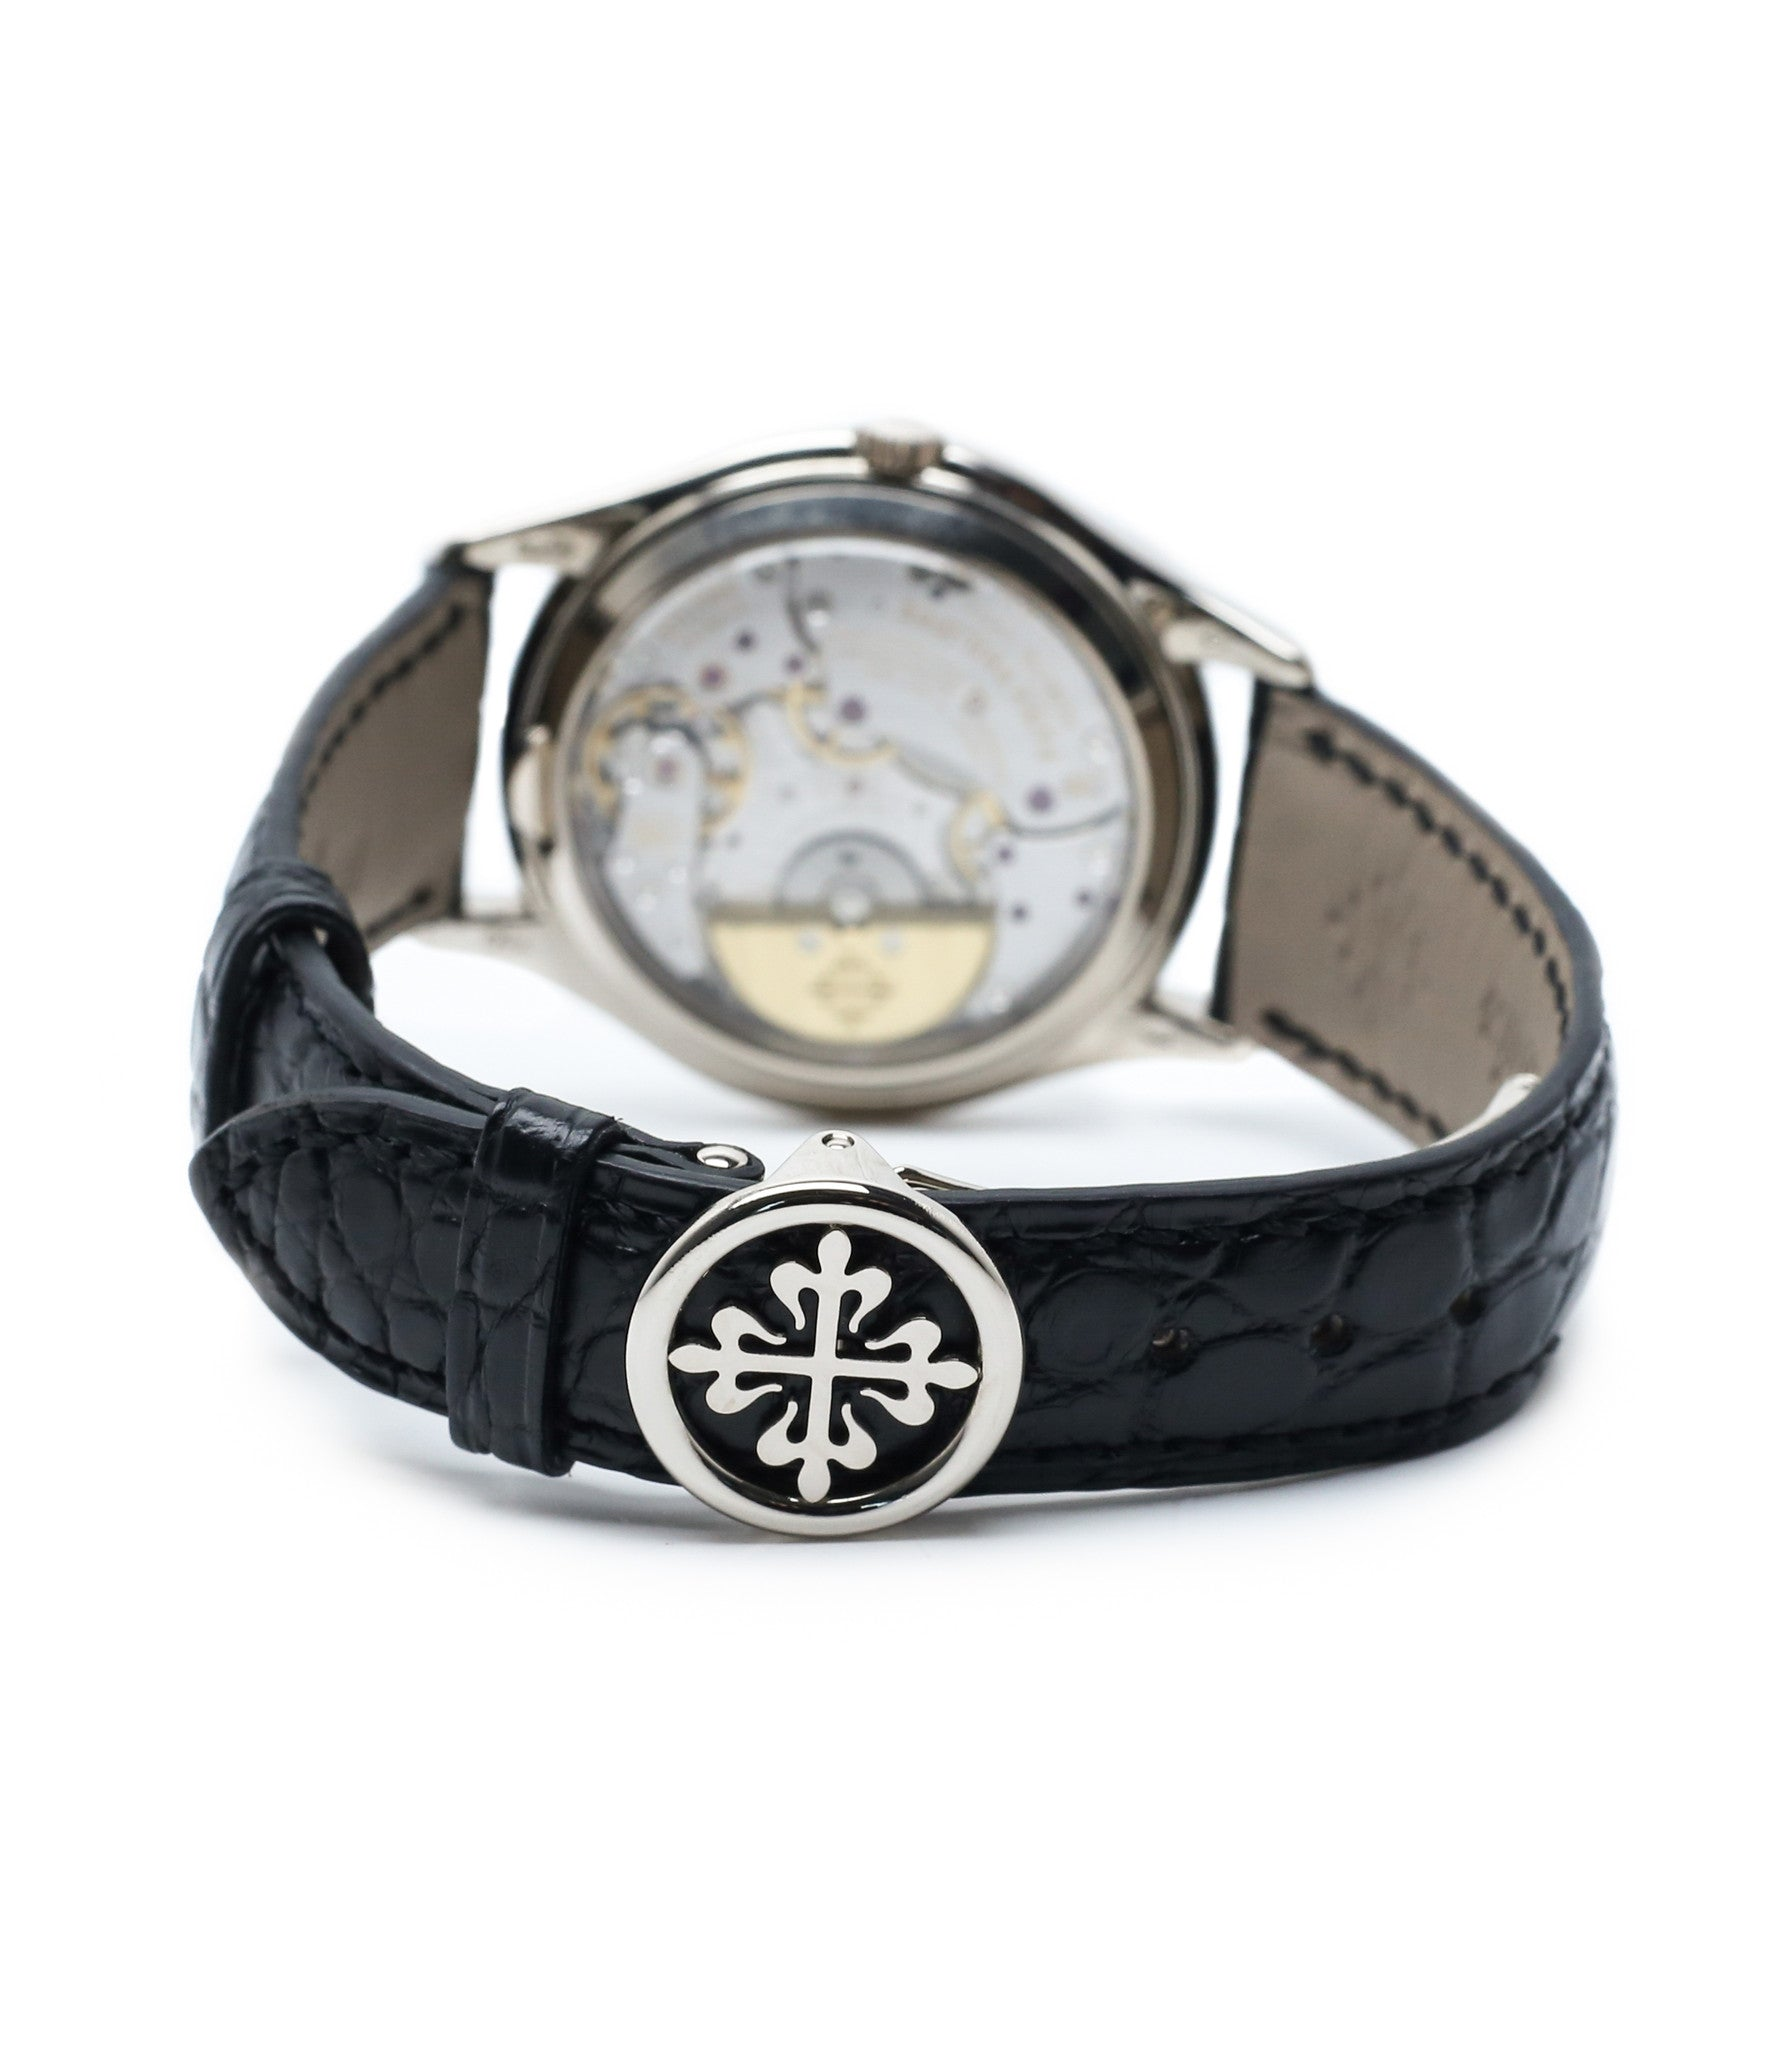 deployant buckle buy rare Patek Philippe Perpetual Calendar 3940G moonphase white gold watch full set at A Collected Man